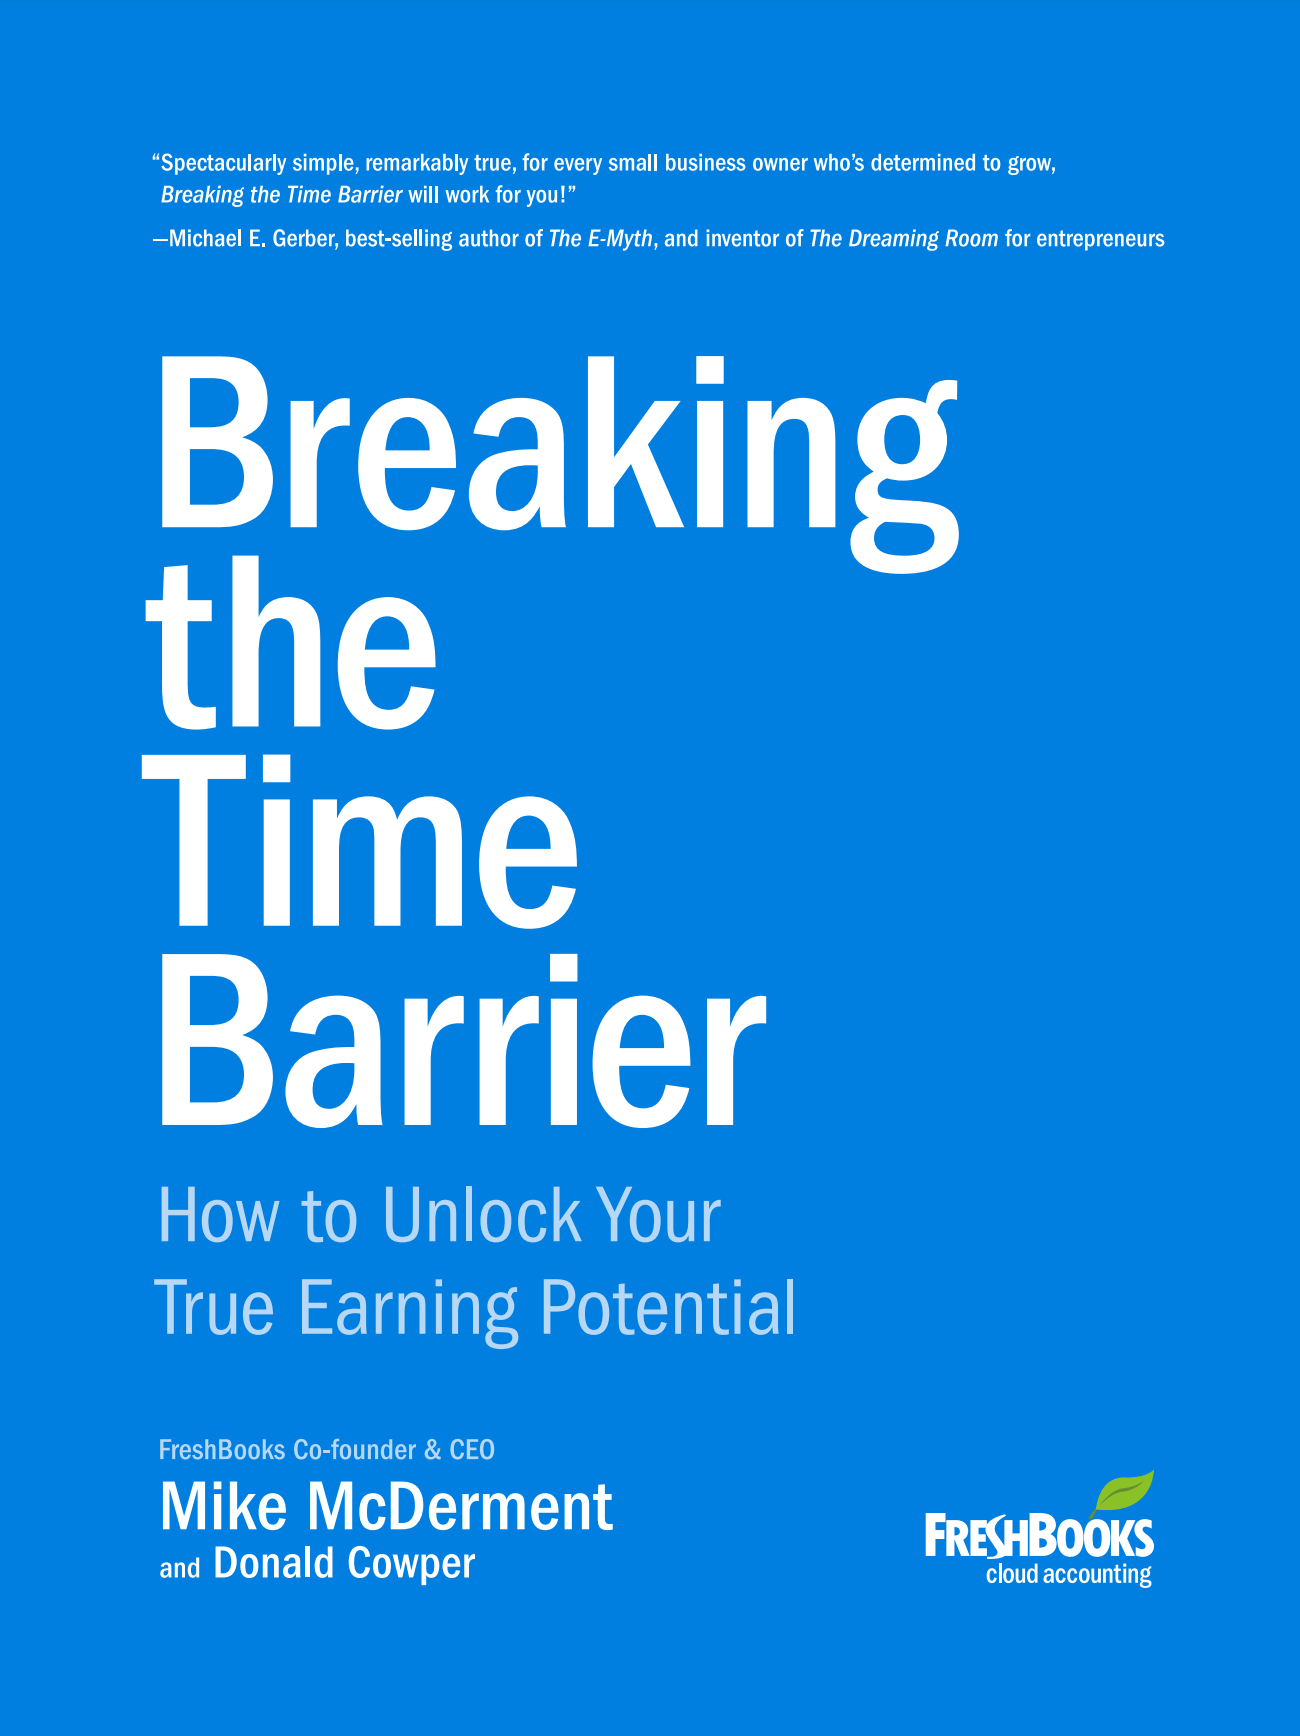 blog introcrea ebooks gratuitos que todo diseñador debe leer Breaking the Time Barrier